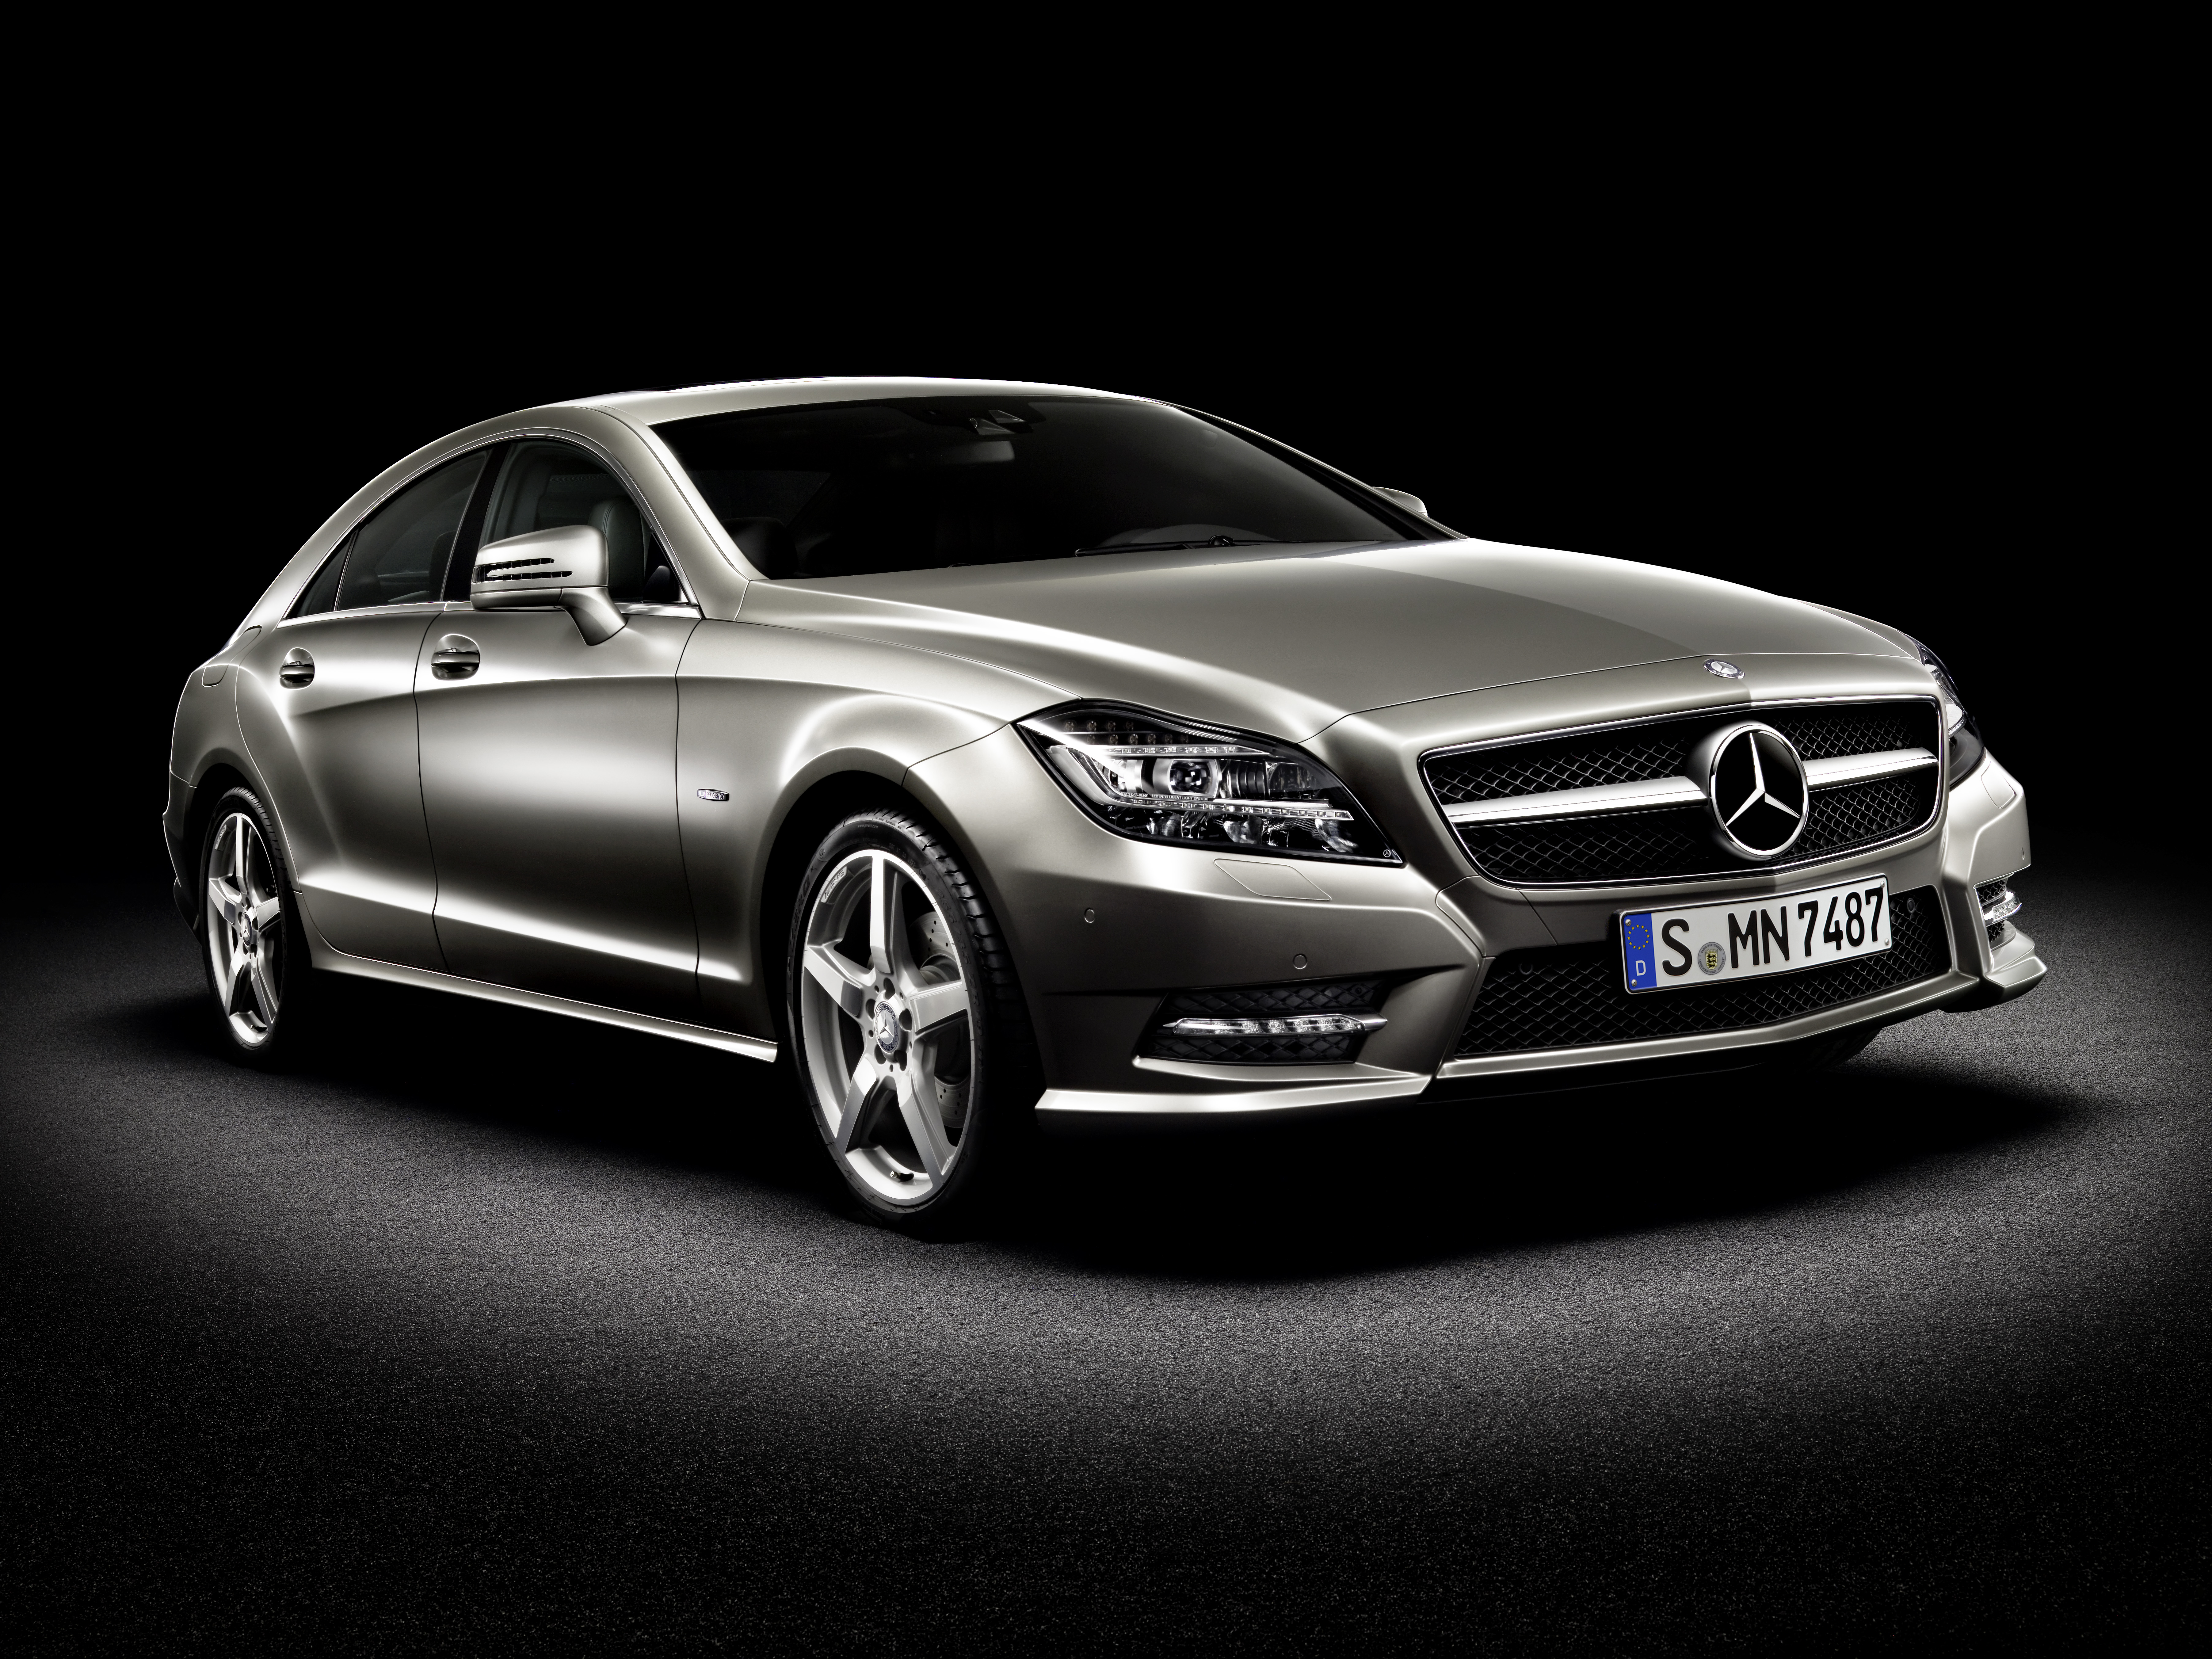 Coupe smokerspack car reviews for Mercedes benz s60